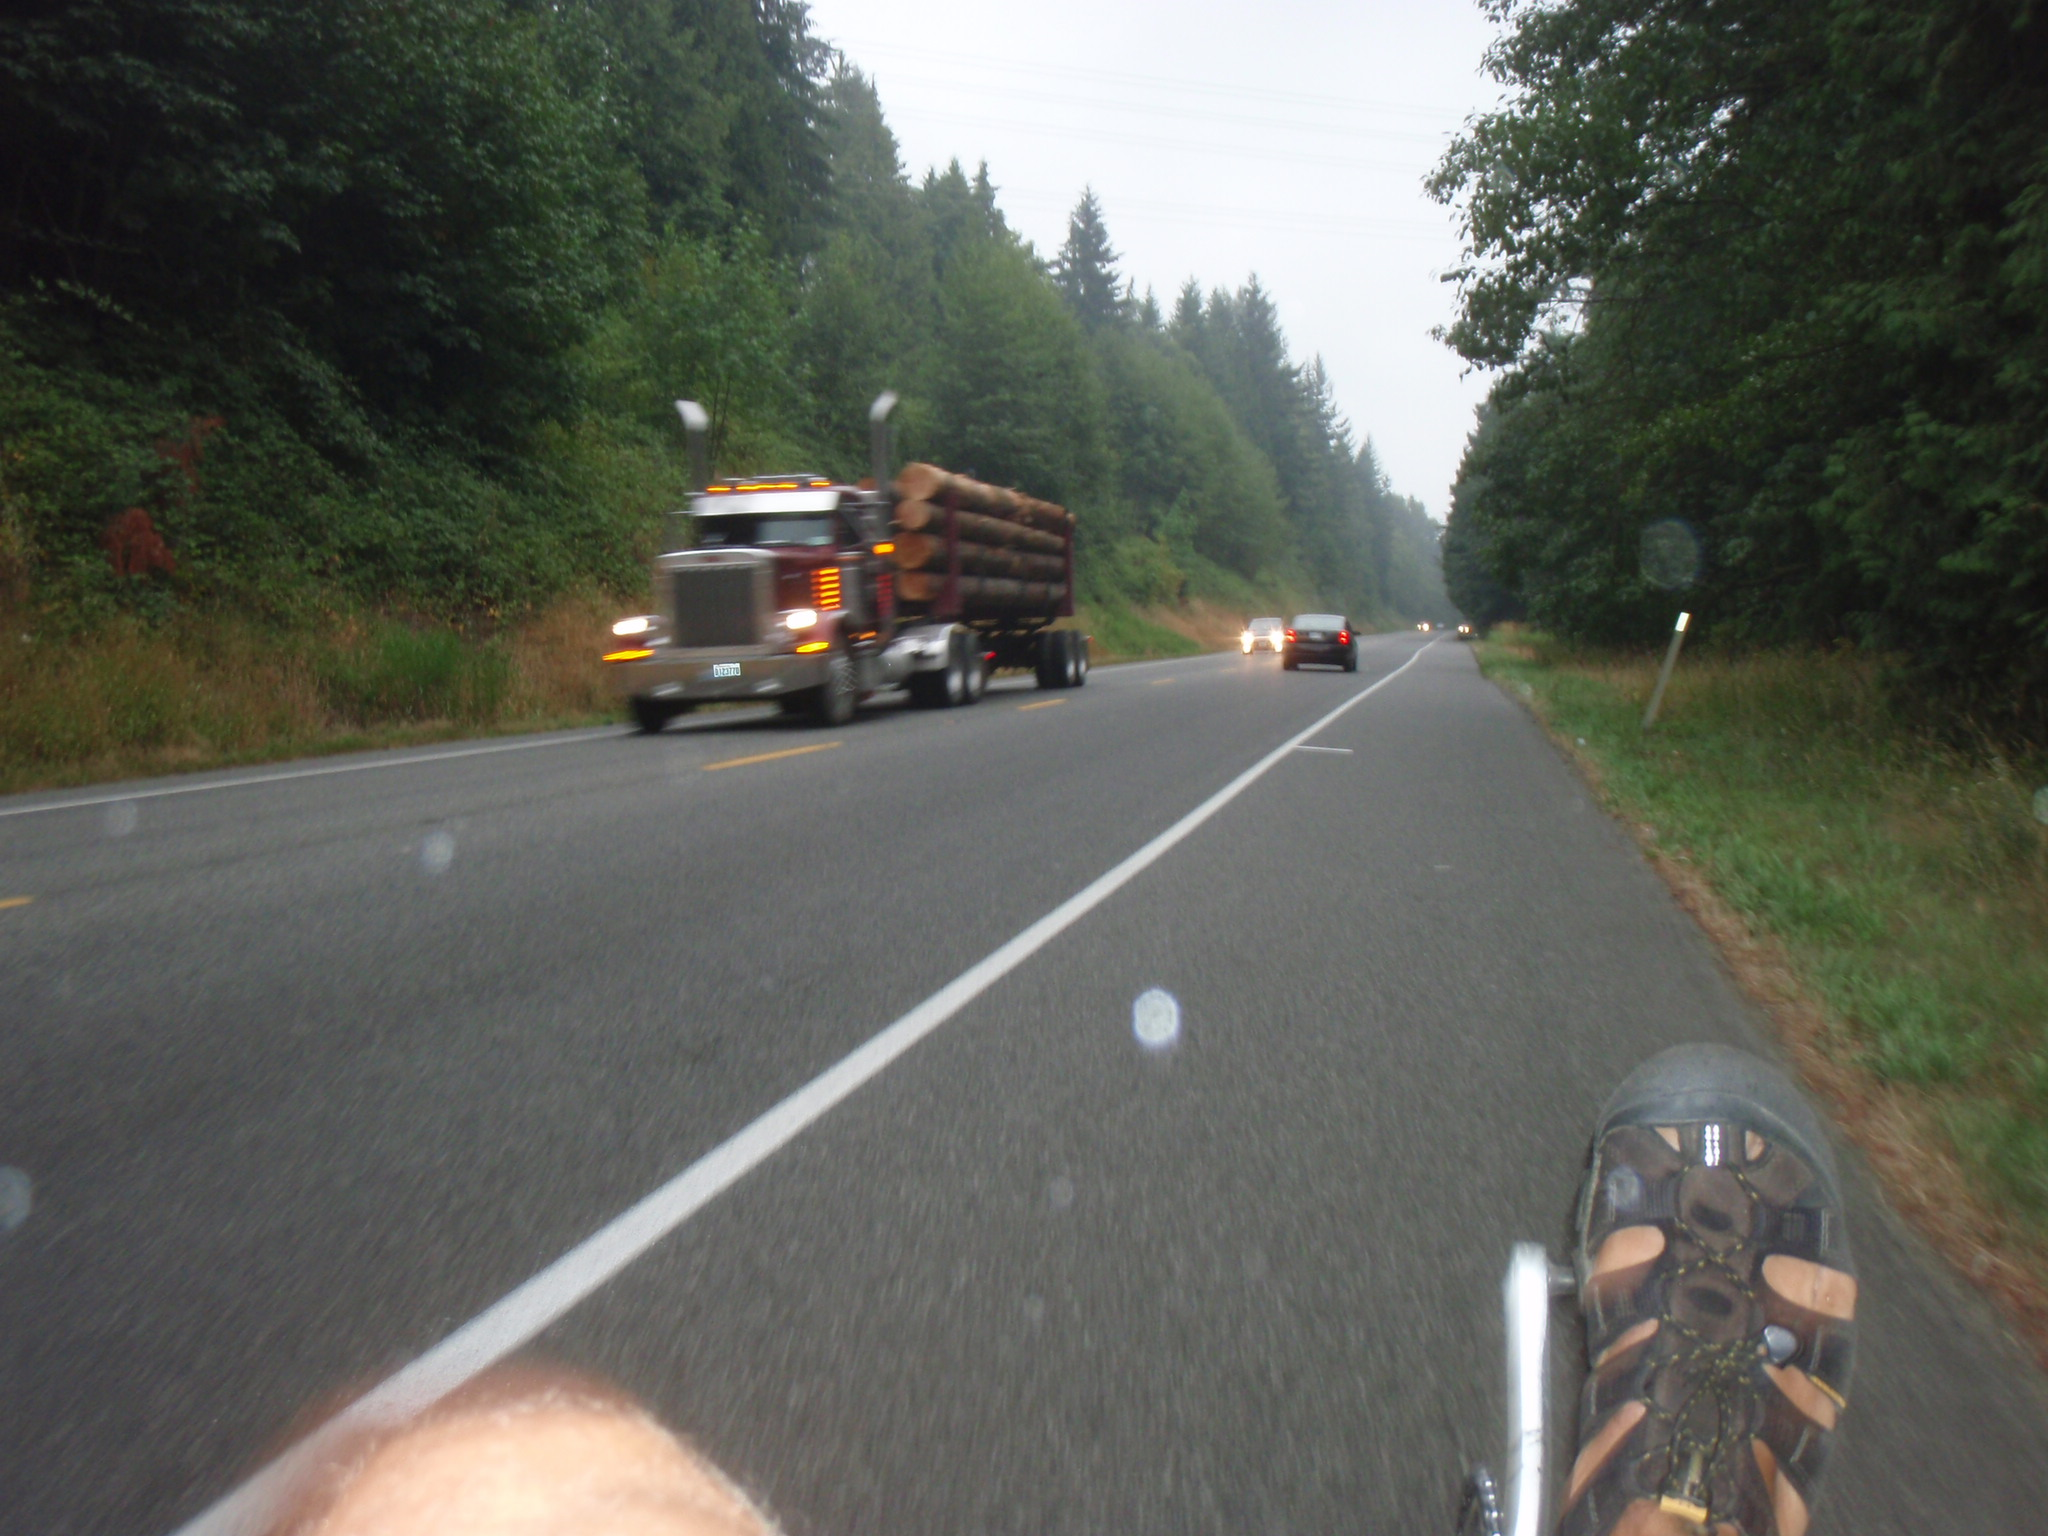 Cool start of riding day with light drizzle in Northern Washington